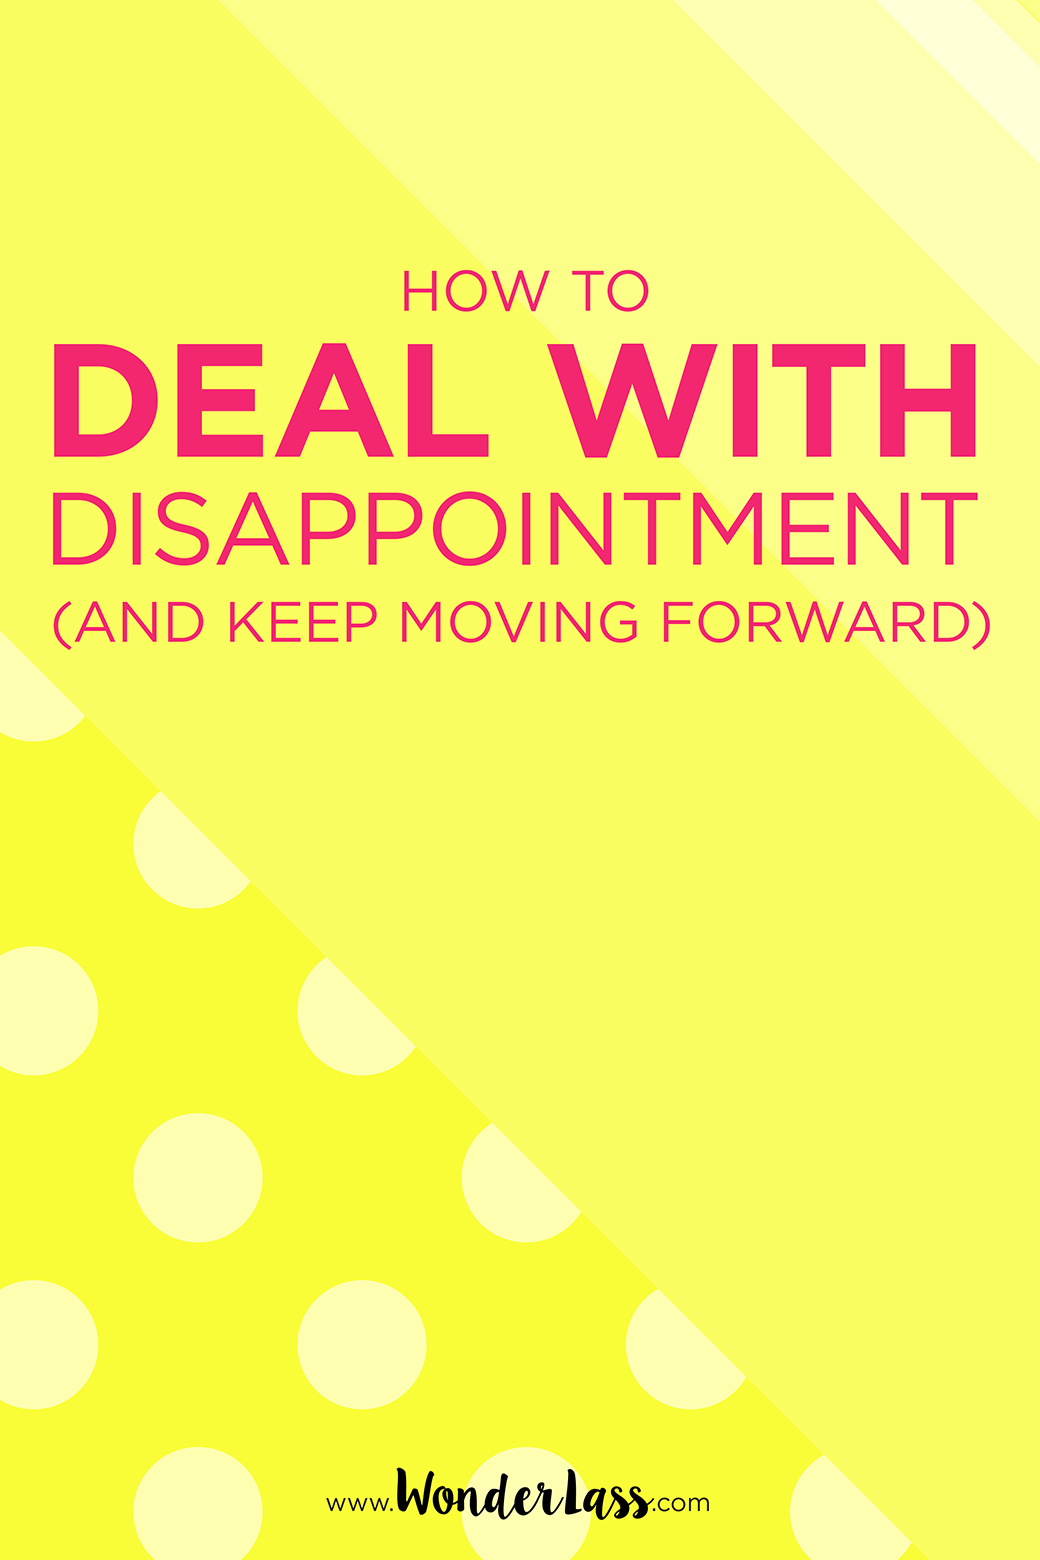 How to deal with disappointment so you don't let it hinder you and you can move forward!